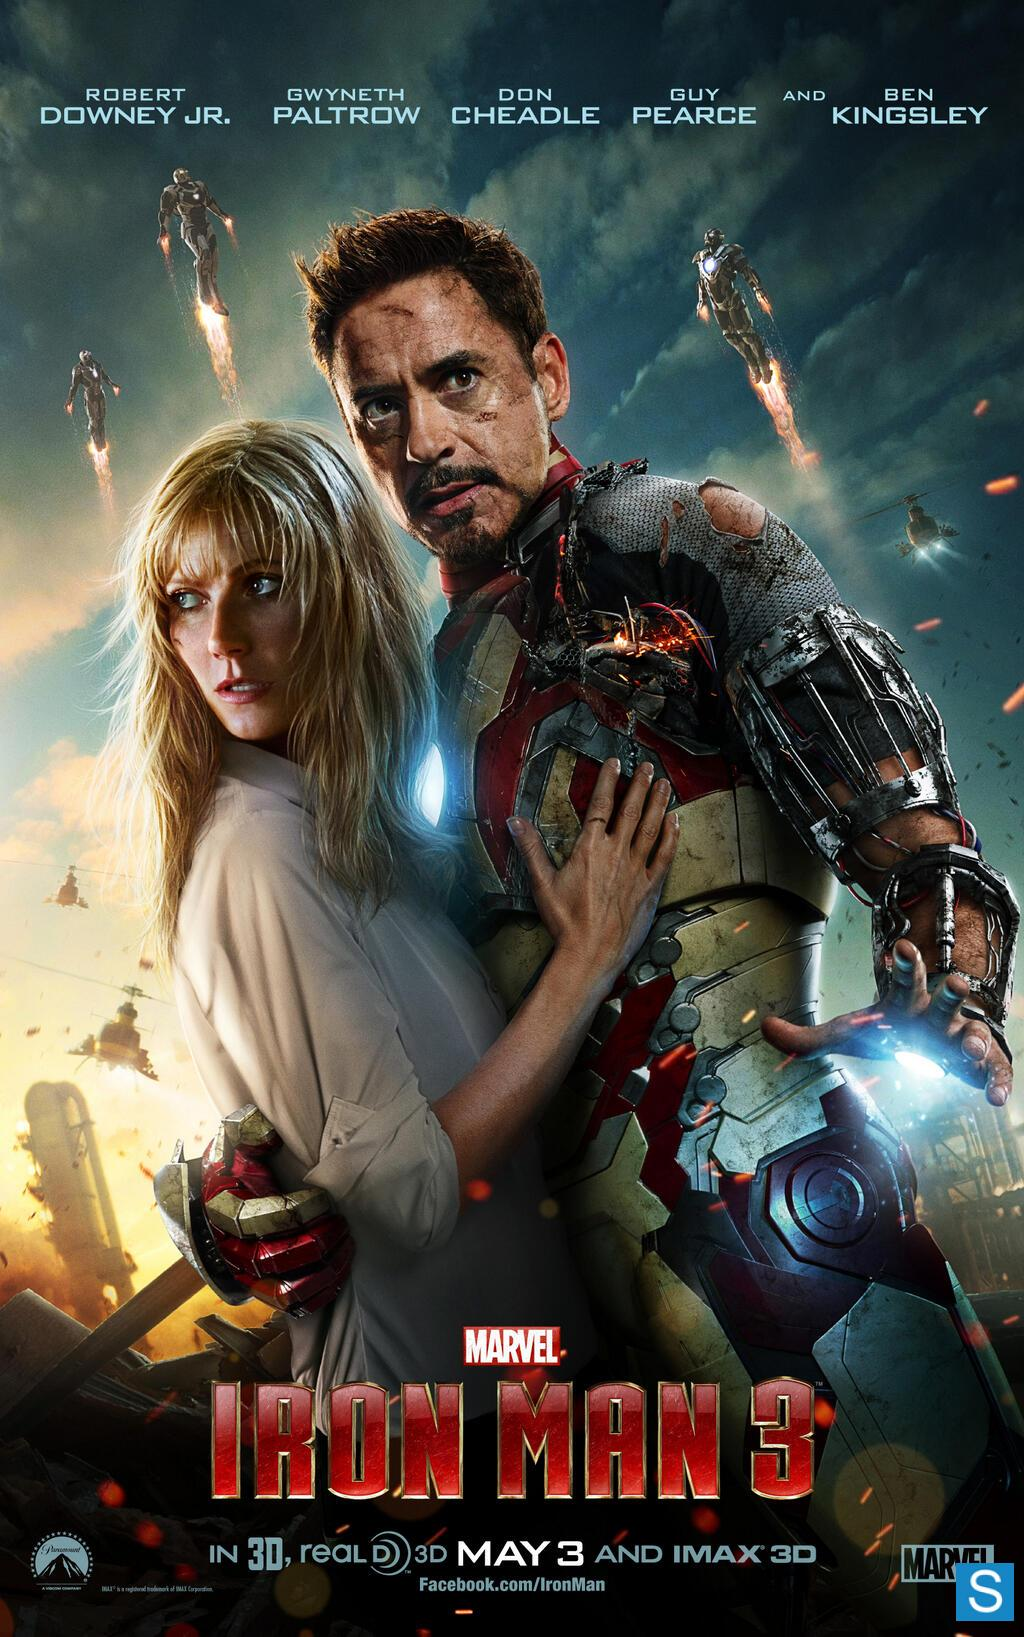 Iron Man 3 - Promotional Posters